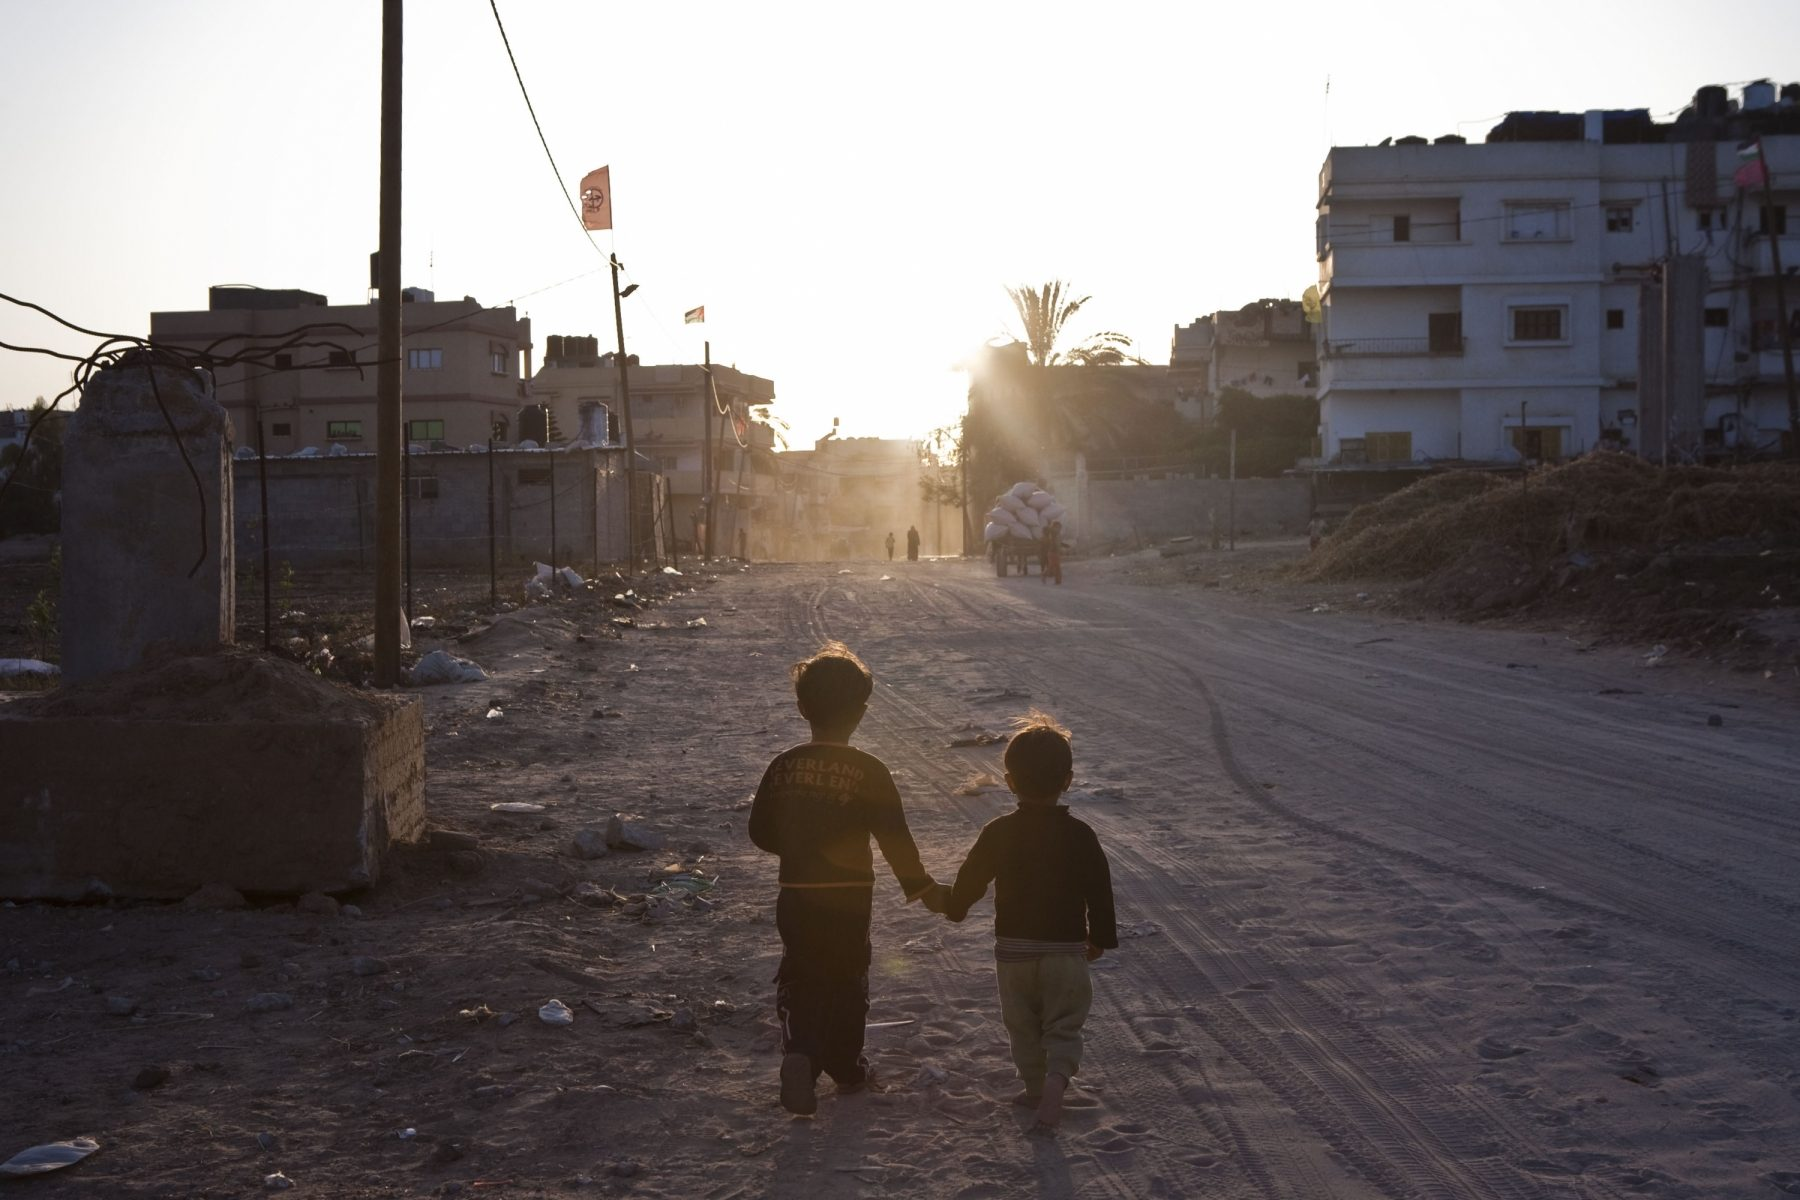 The road to peace in the Middle East